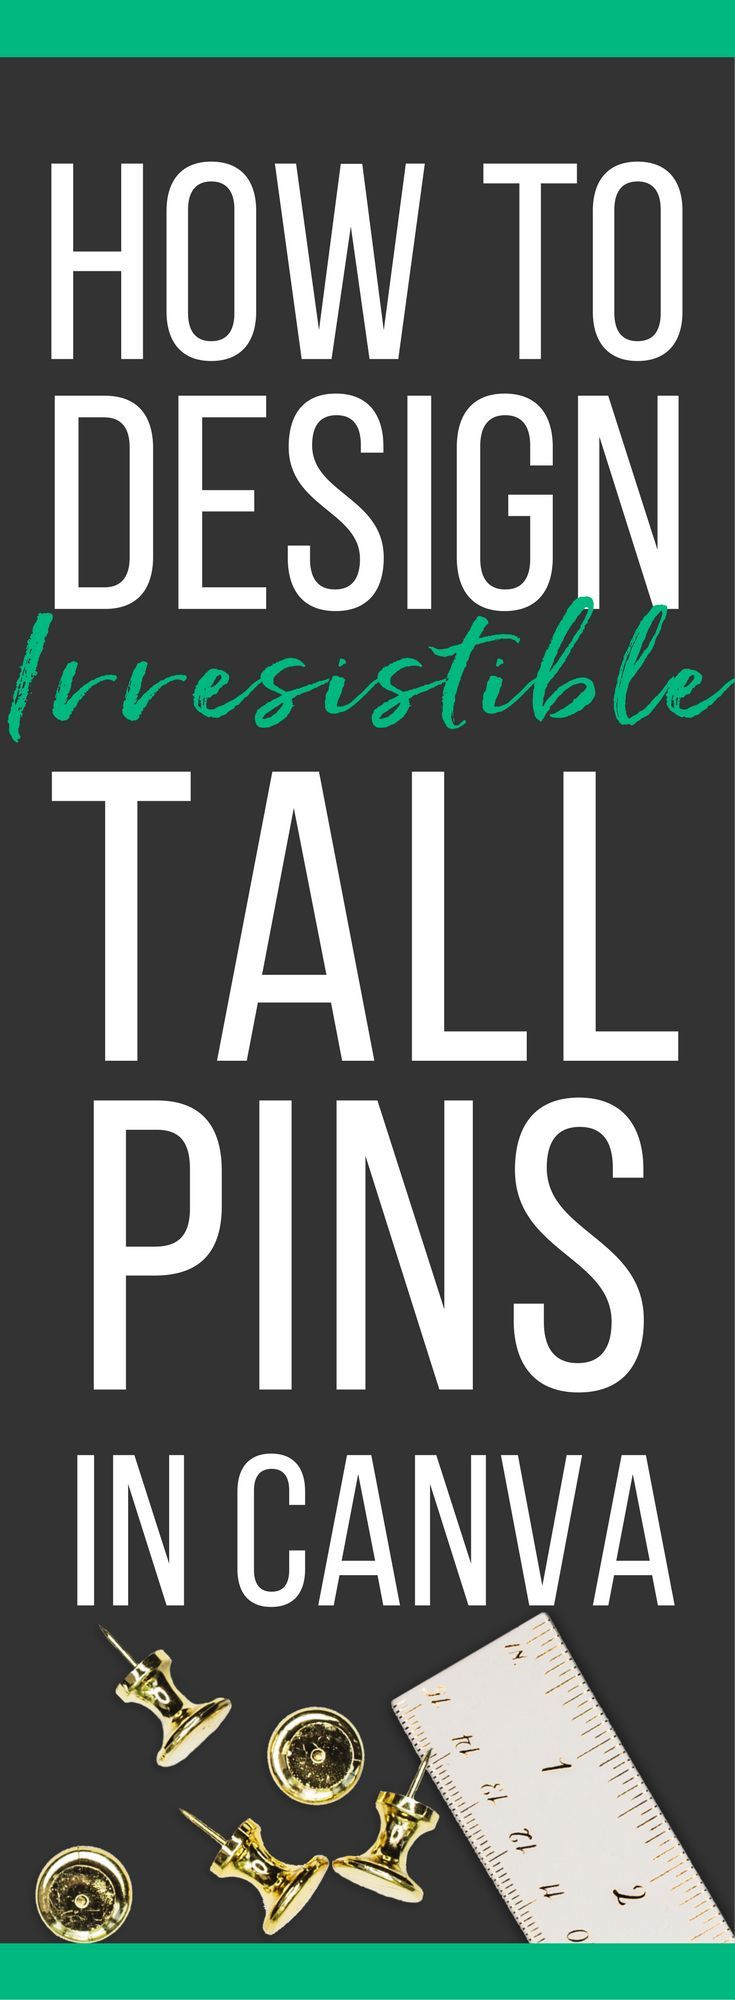 How To Design Irresistible Tall Pins In Canva (With images